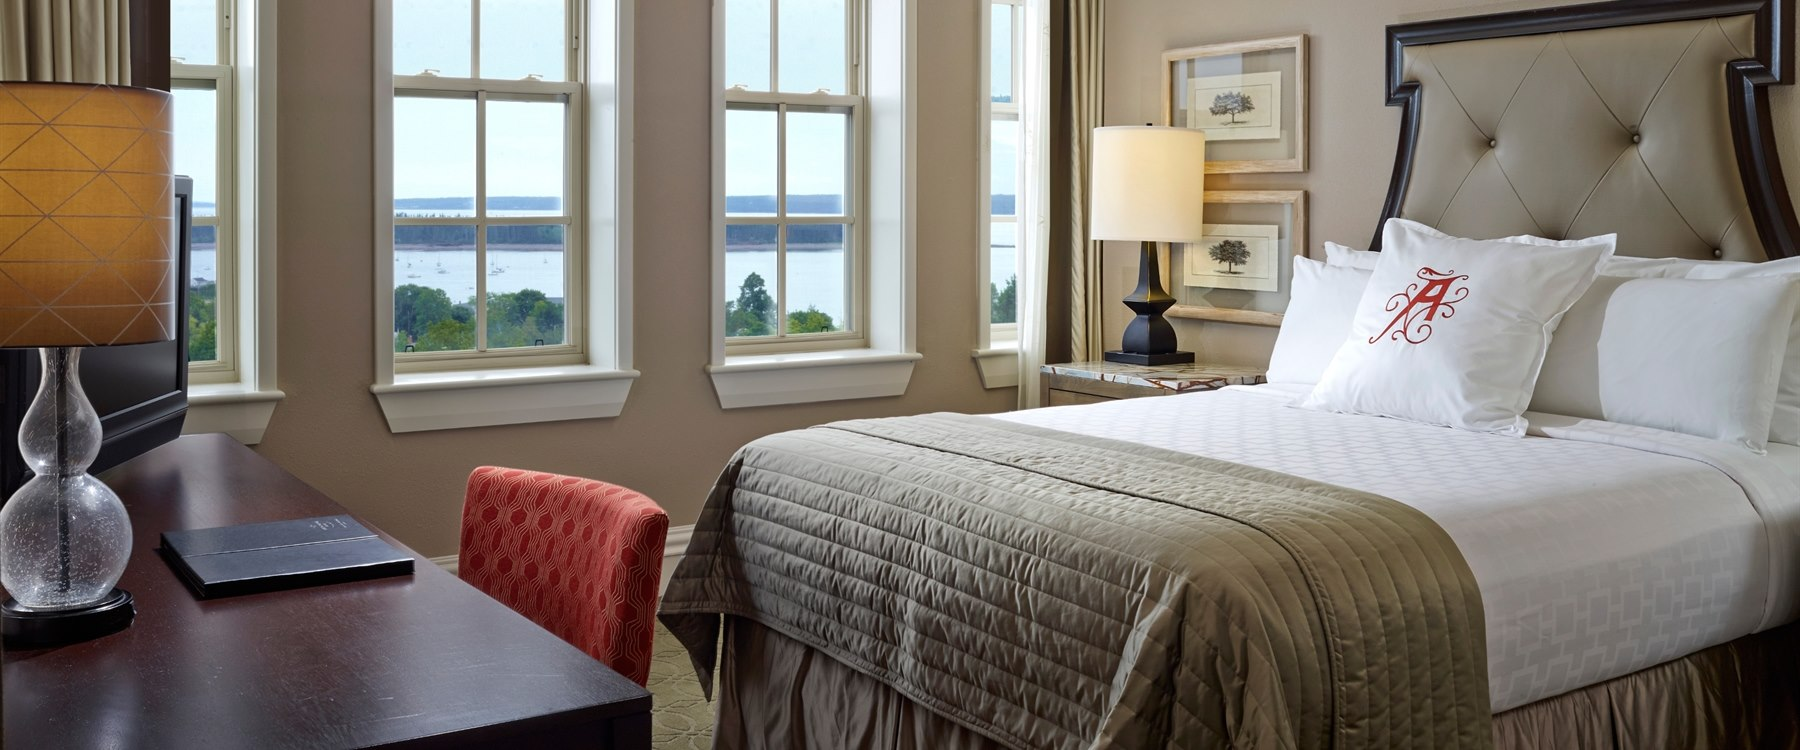 Bayview Queen bedroom at The Algonquin Resort, St. Andrews